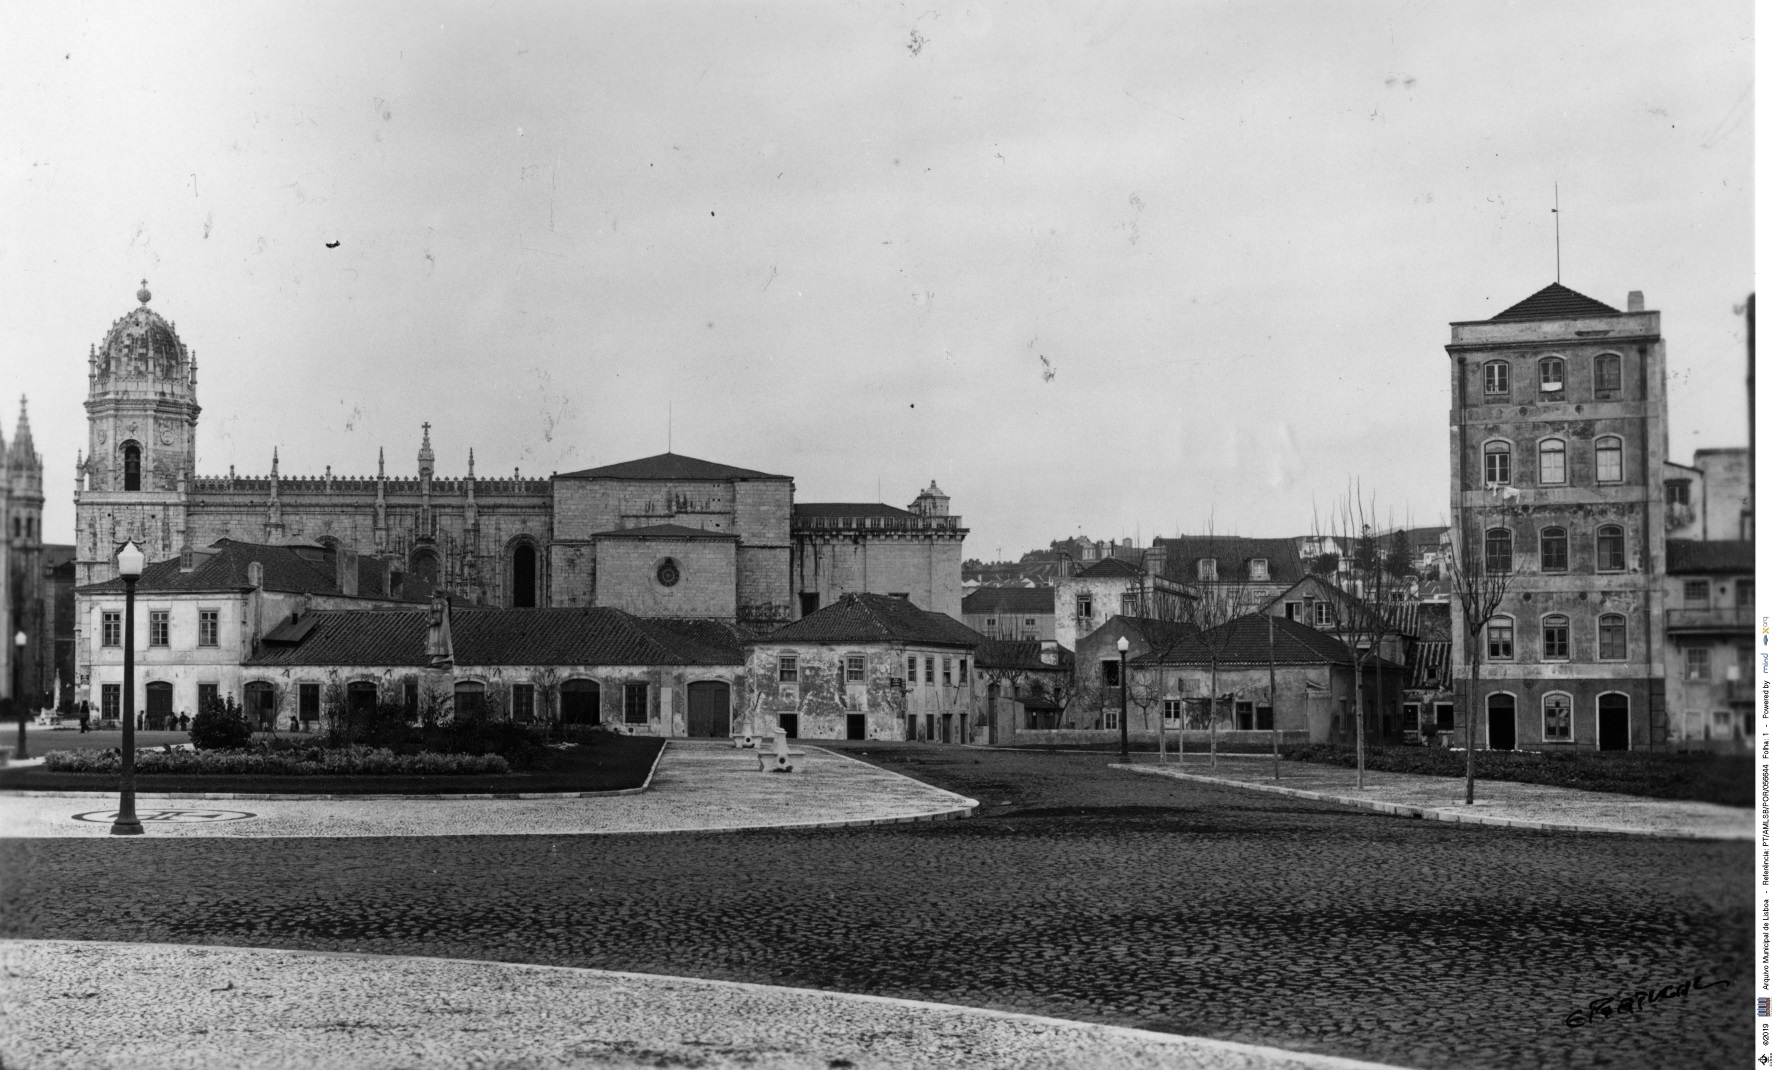 photograph of Praça do Império, panoramic prior to the exhibition of the Portuguese World 9 February 1939. Buildings occupy the space in front of the Jerónimos monastery and also a garden with a statue.